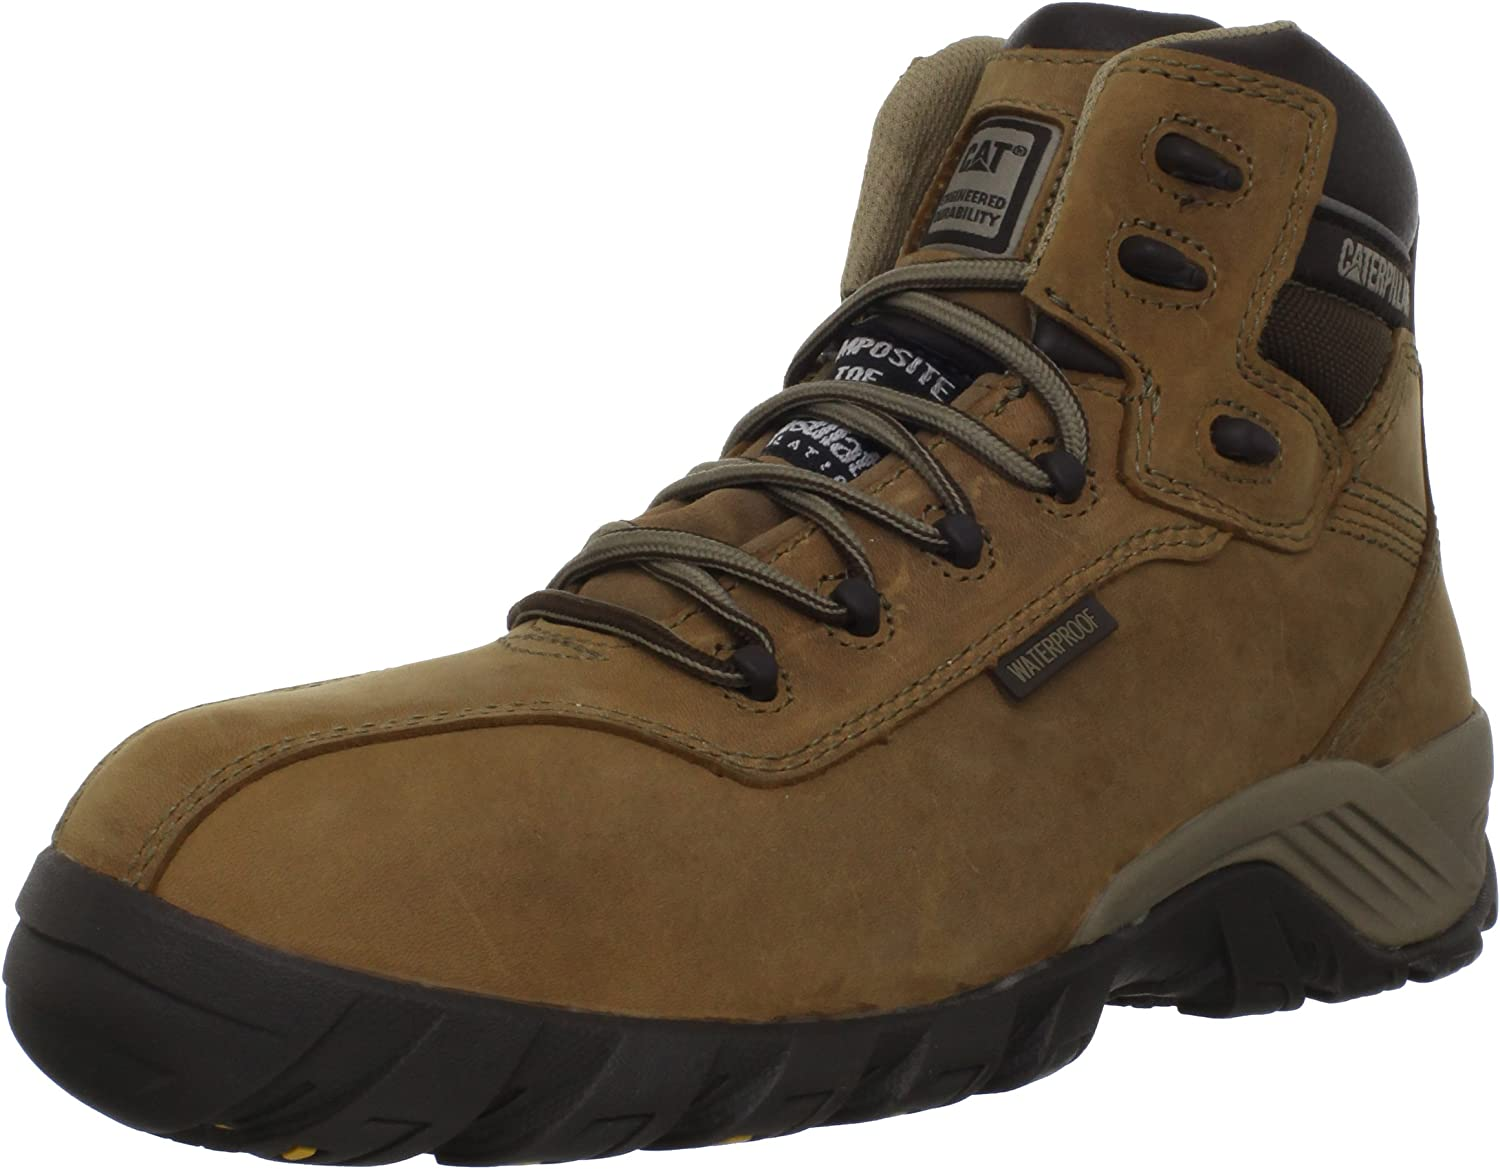 Caterpillar Women's Nitrogen Waterproof CT Work Boot